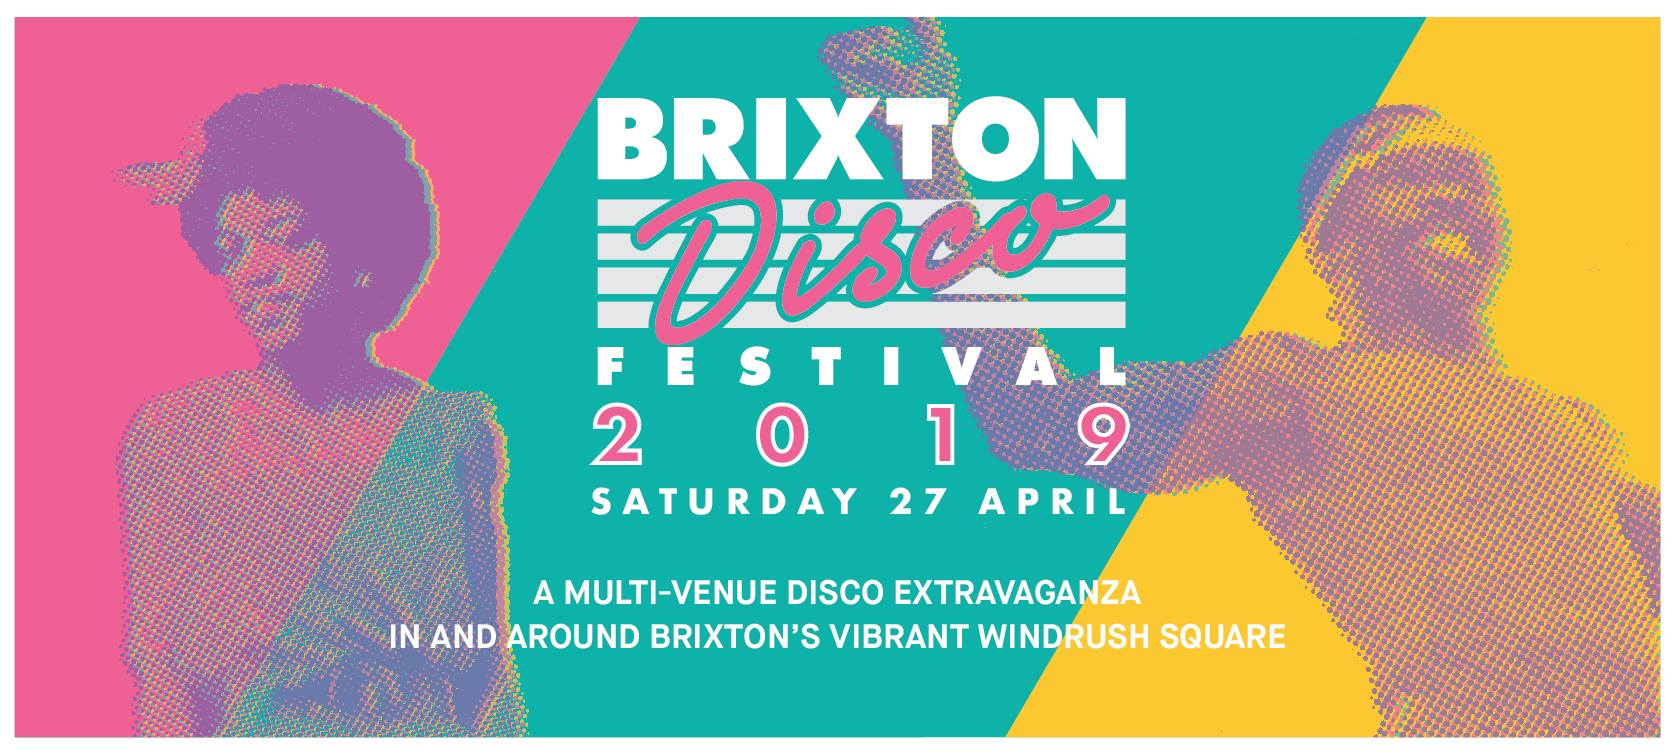 Brixton Disco Festival returns to venues across London this April